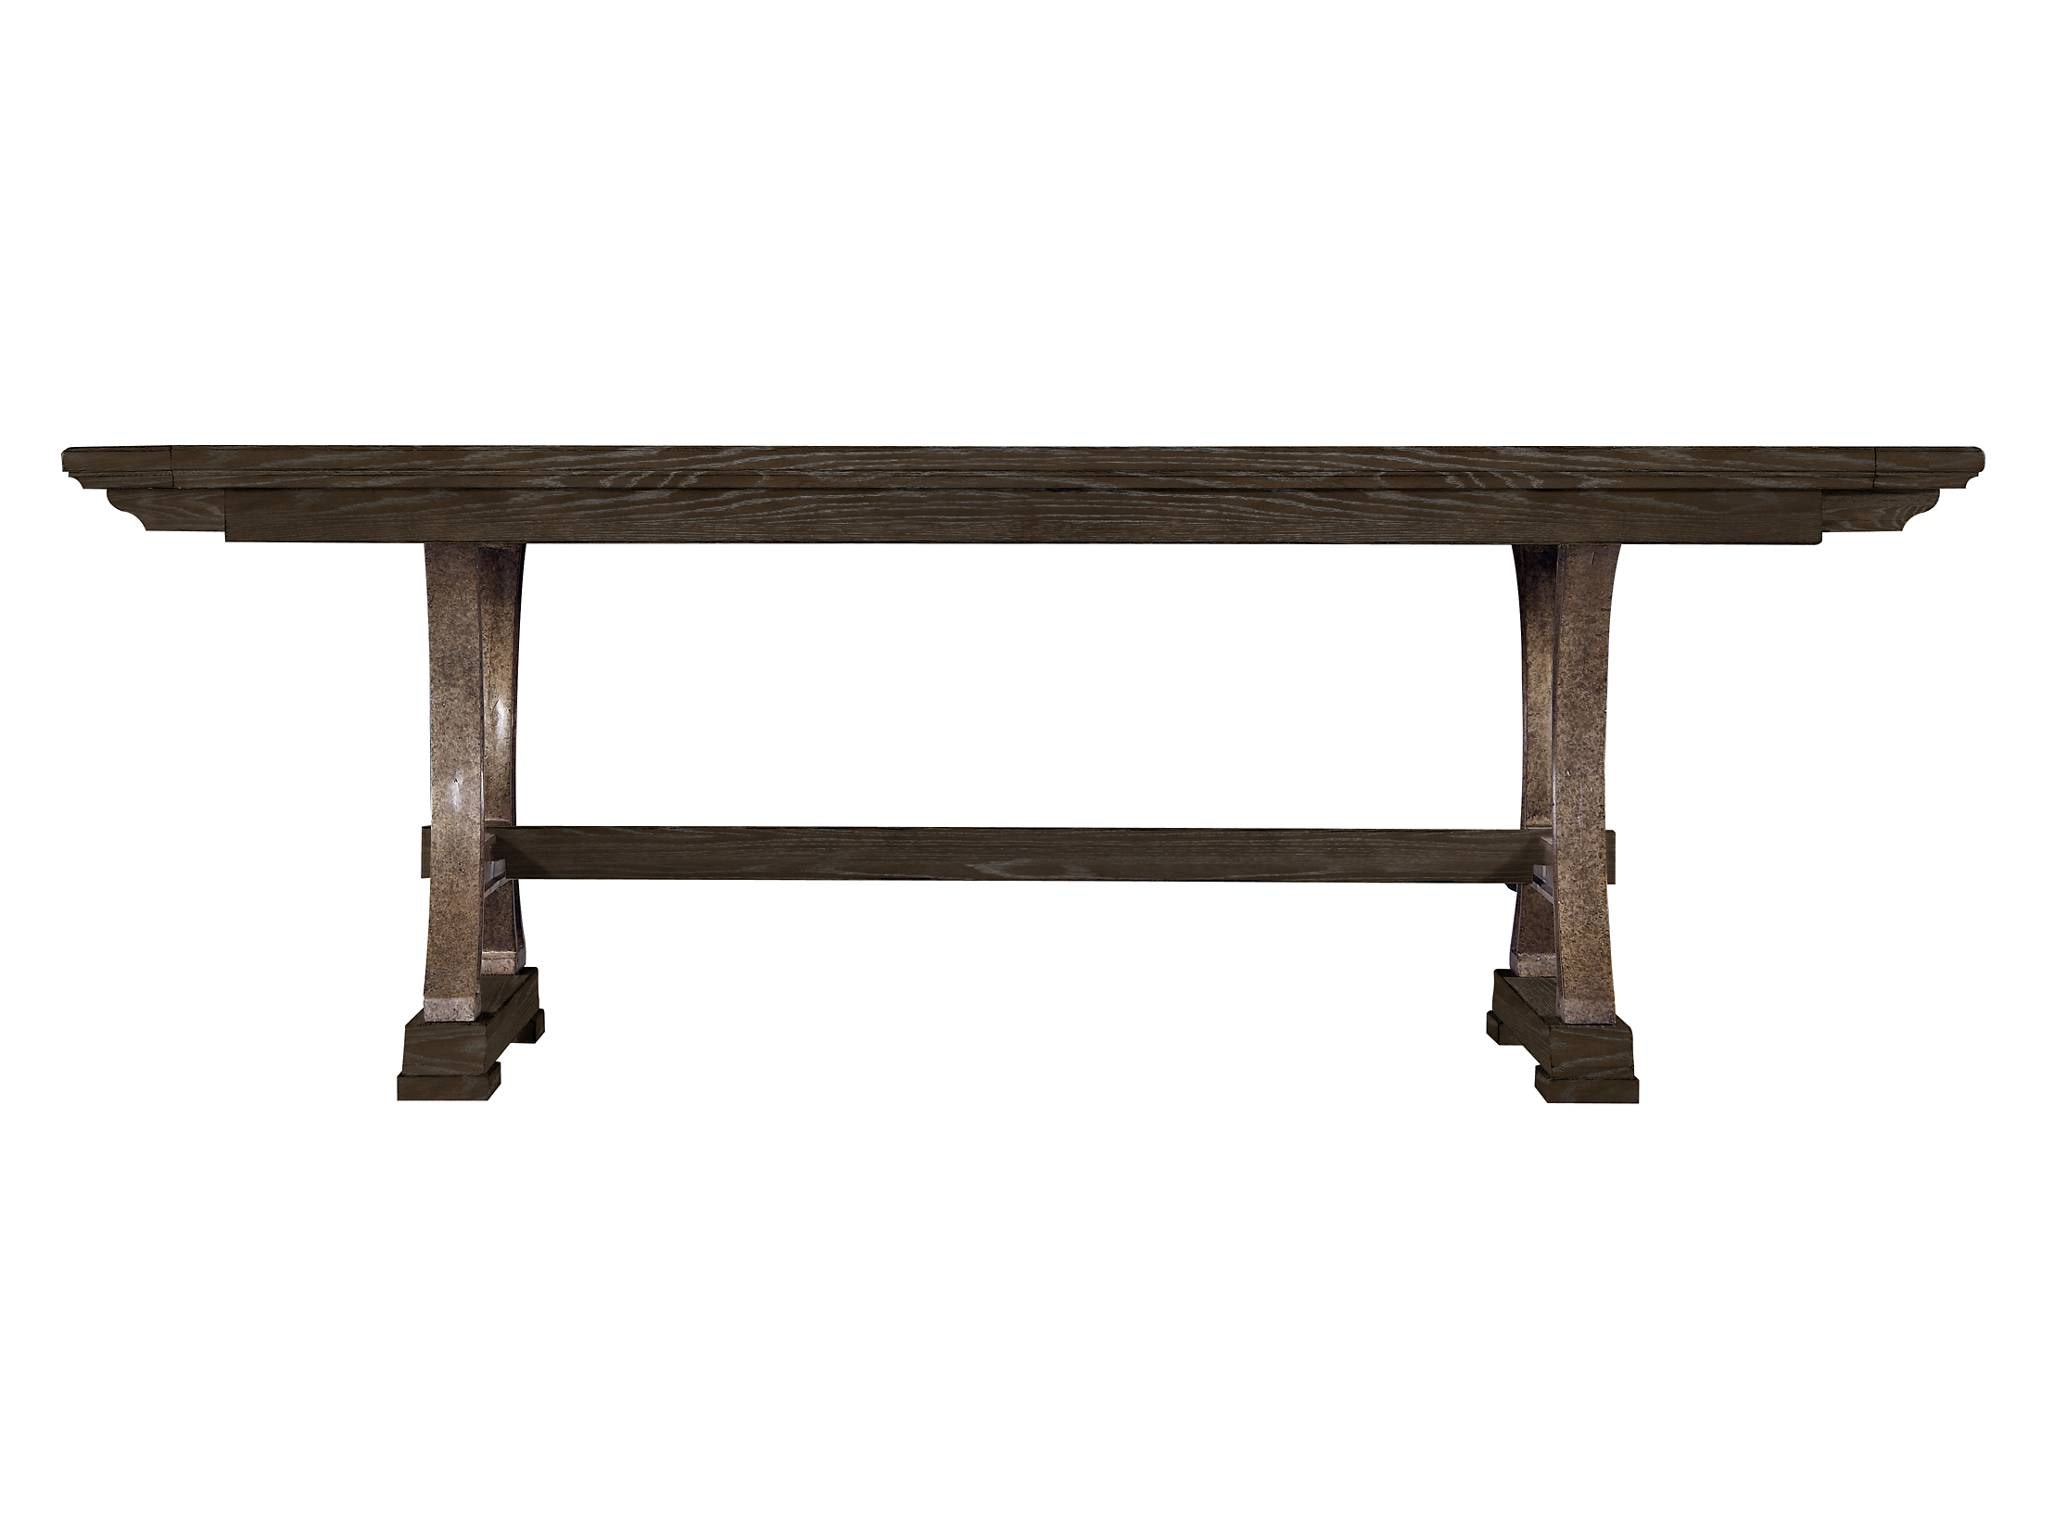 Coastal Living Shelter Bay Table 062 11 36